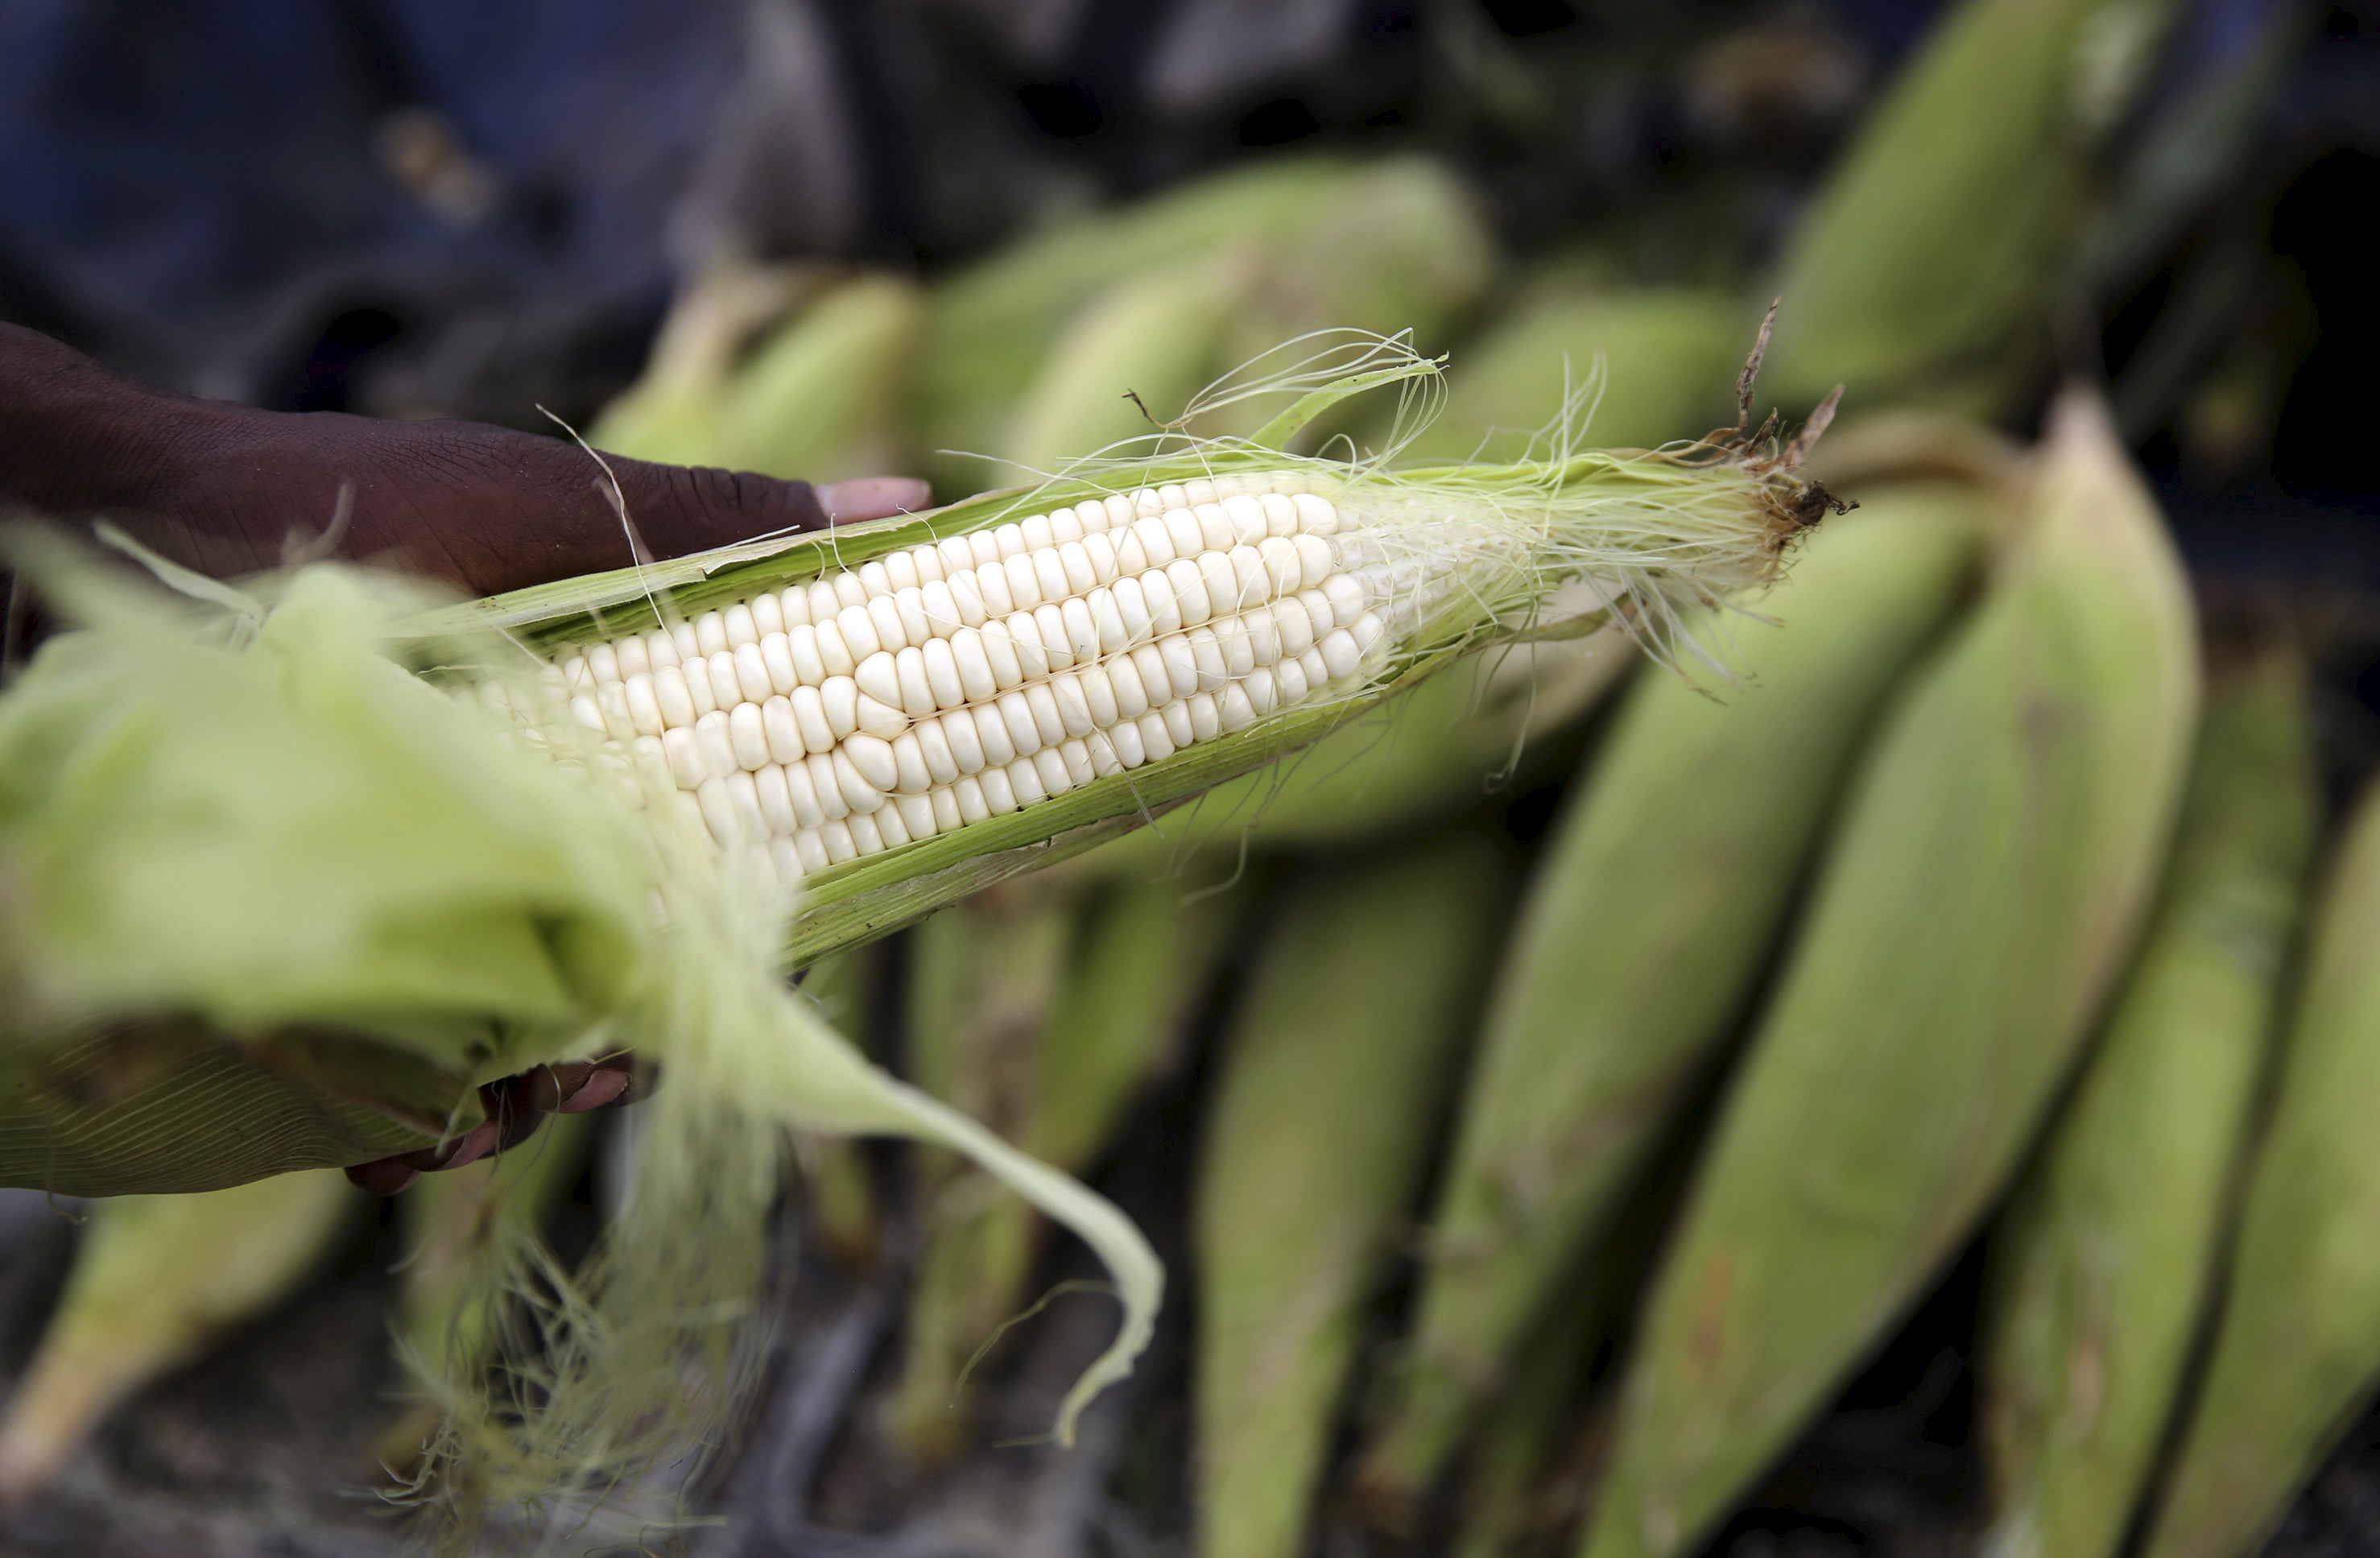 South Africa's record maize crop struggles to find export market as Africa rejects GMO crops